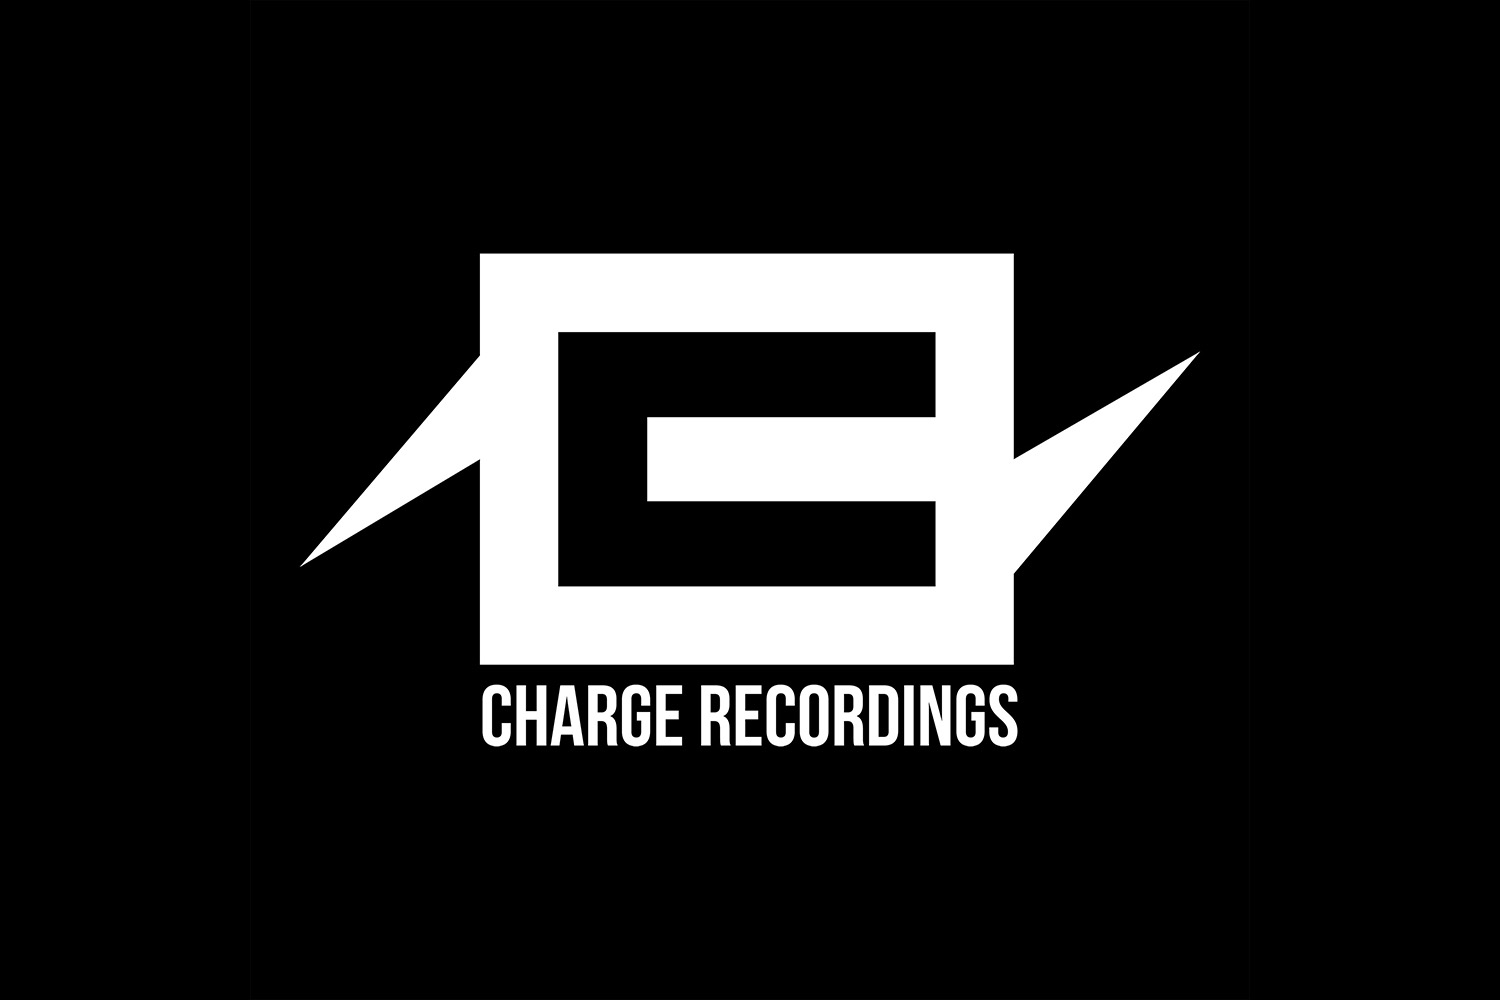 charge-recordings-charge-records-mampi-swift-pyroradio-pyroradio-com-pyro-radio